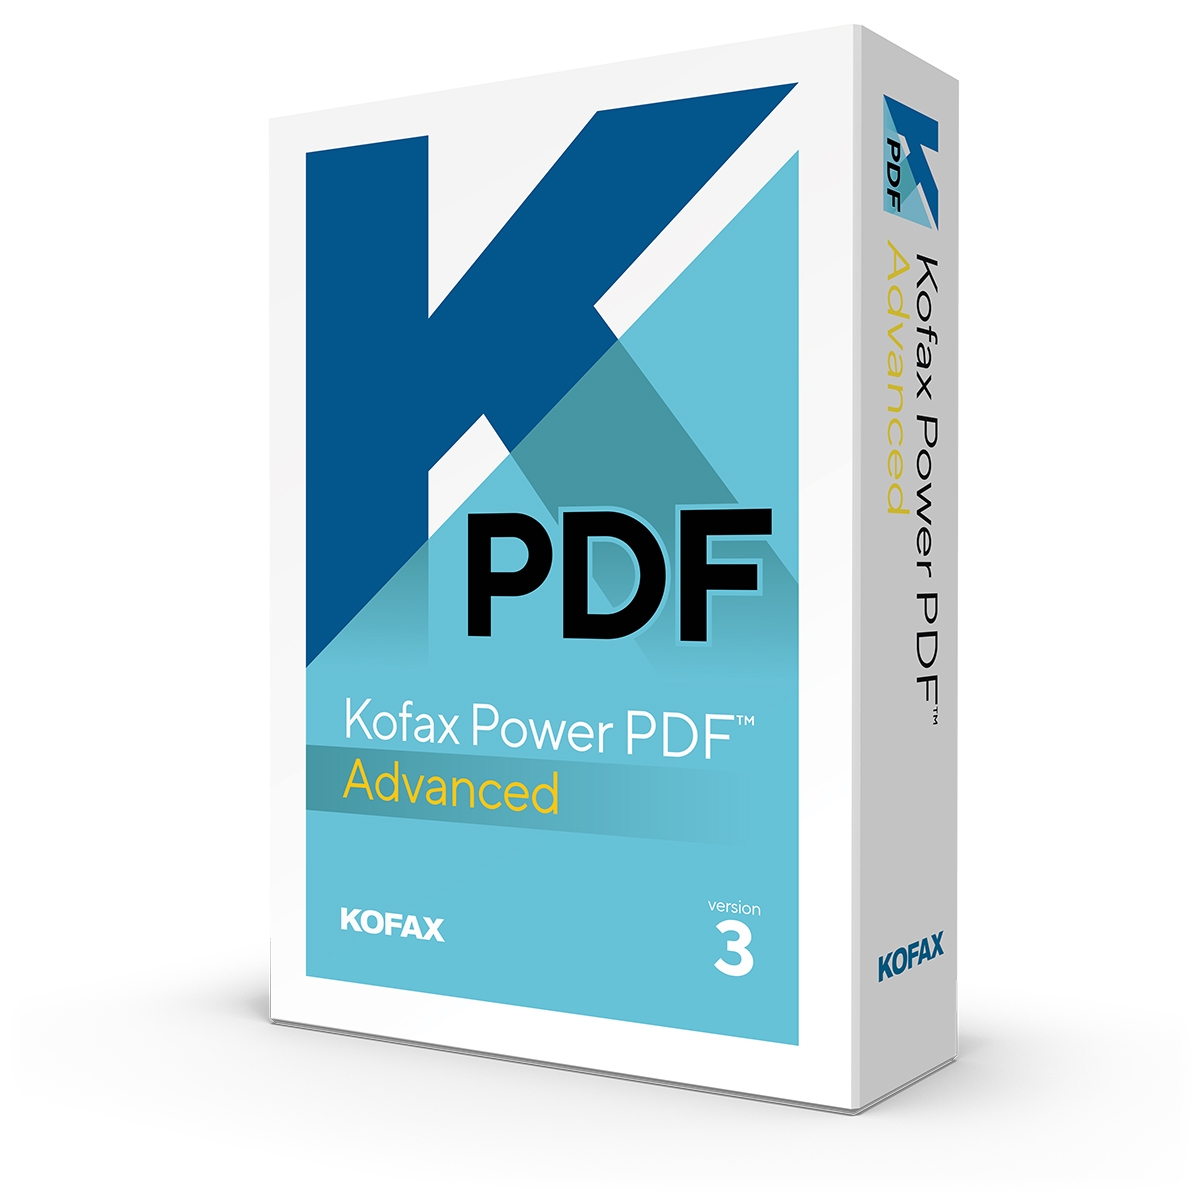 Kofax Power PDF Advanced v3 International English Retail